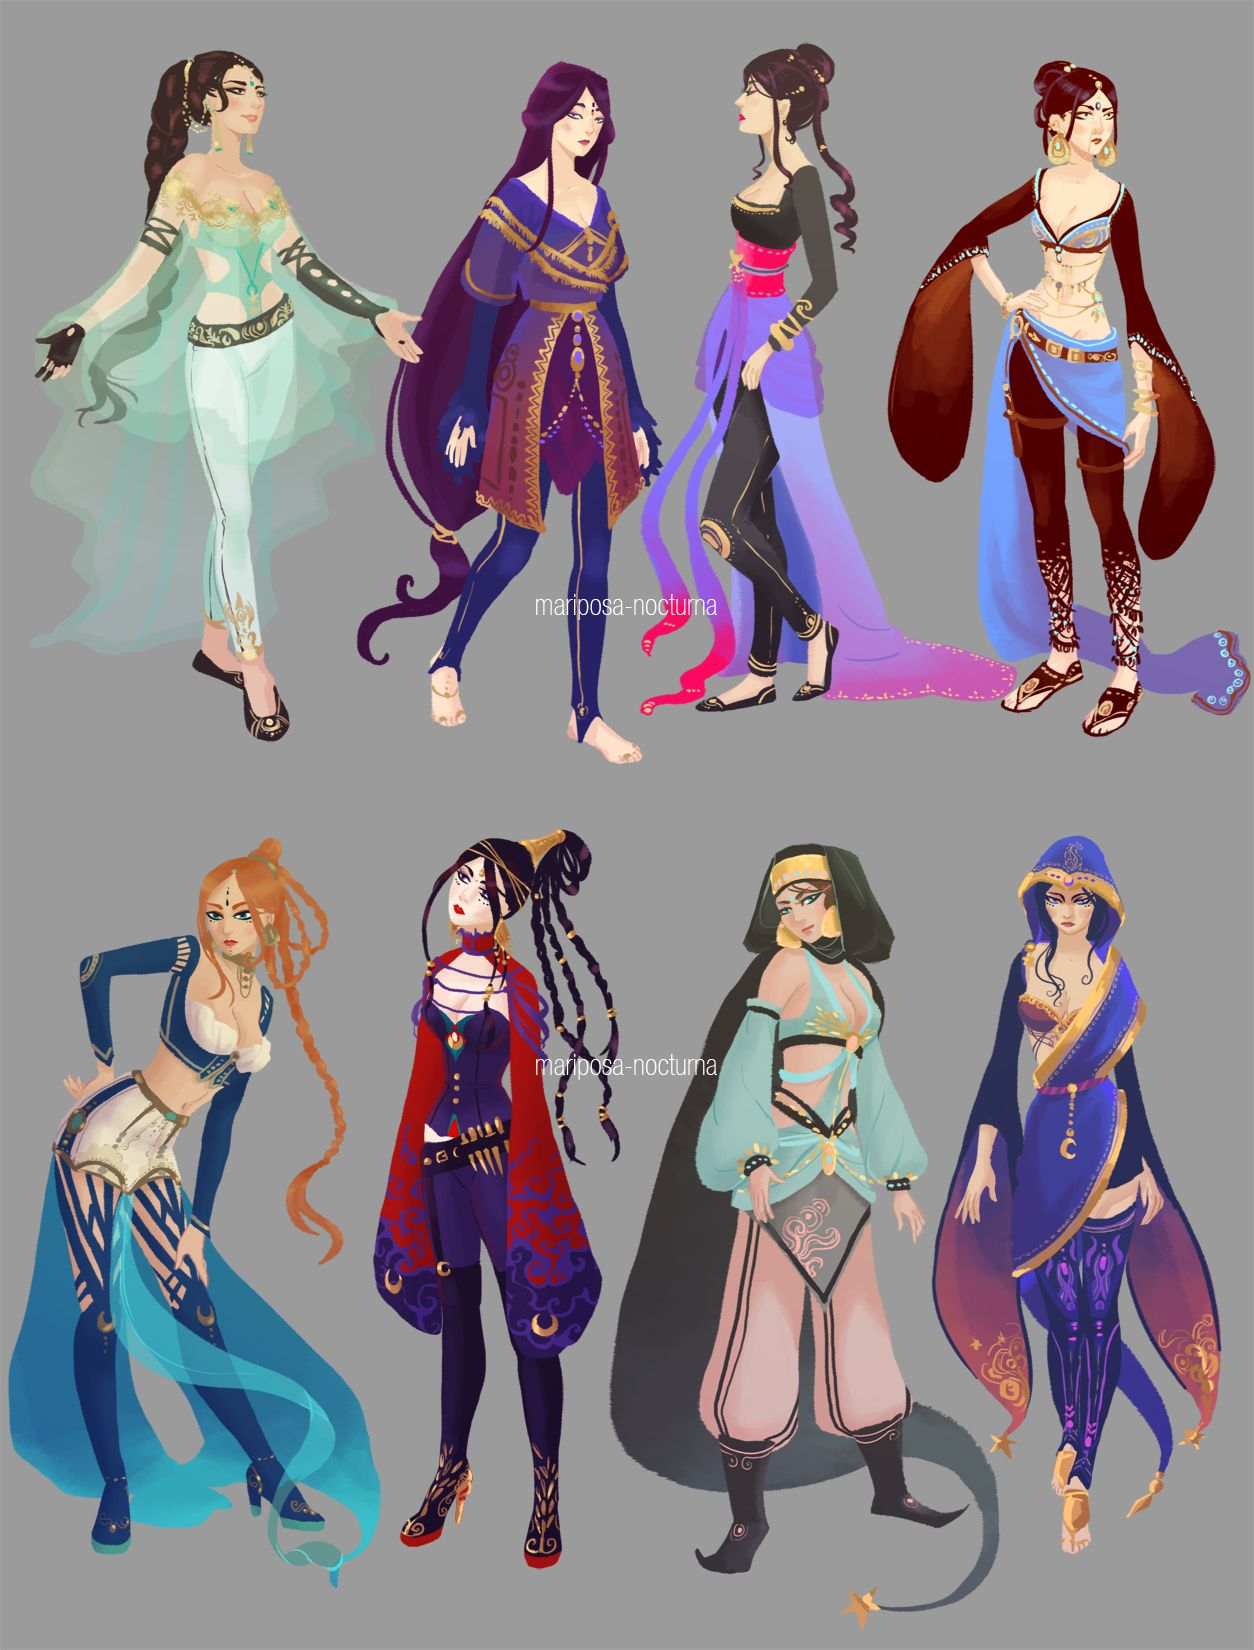 Character Costume Design Tips : Tumblr sketchdump costume design research by mariposa